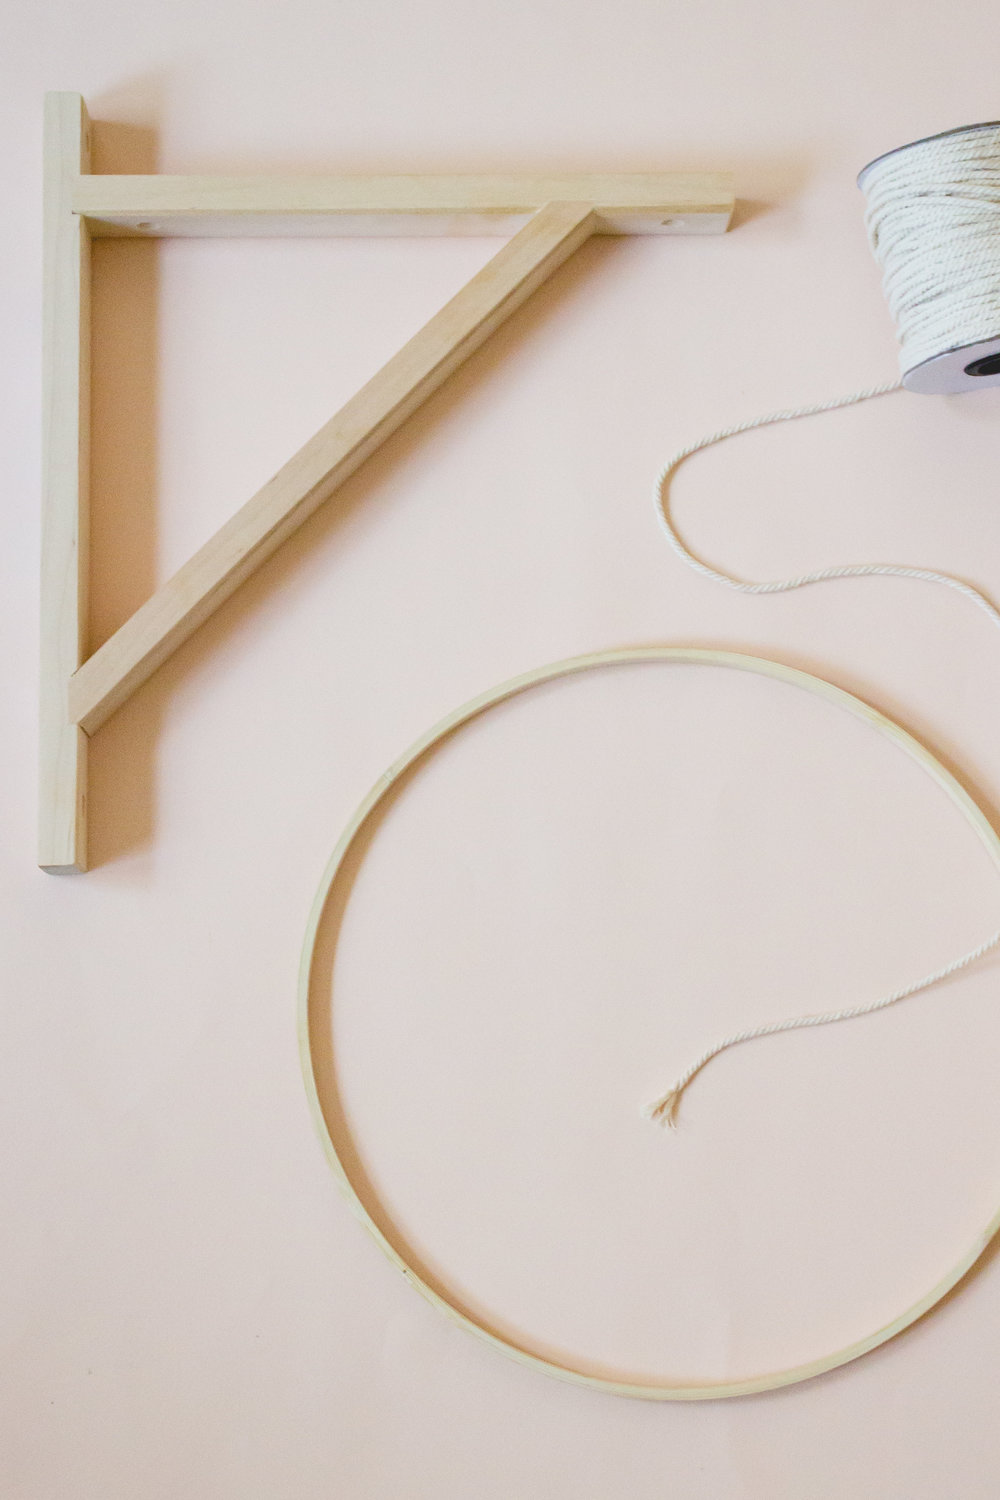 Ikea Valter Bracket, embroidery hoop, and macrame rope - used to make a diy tassel mobile for a boho nursery